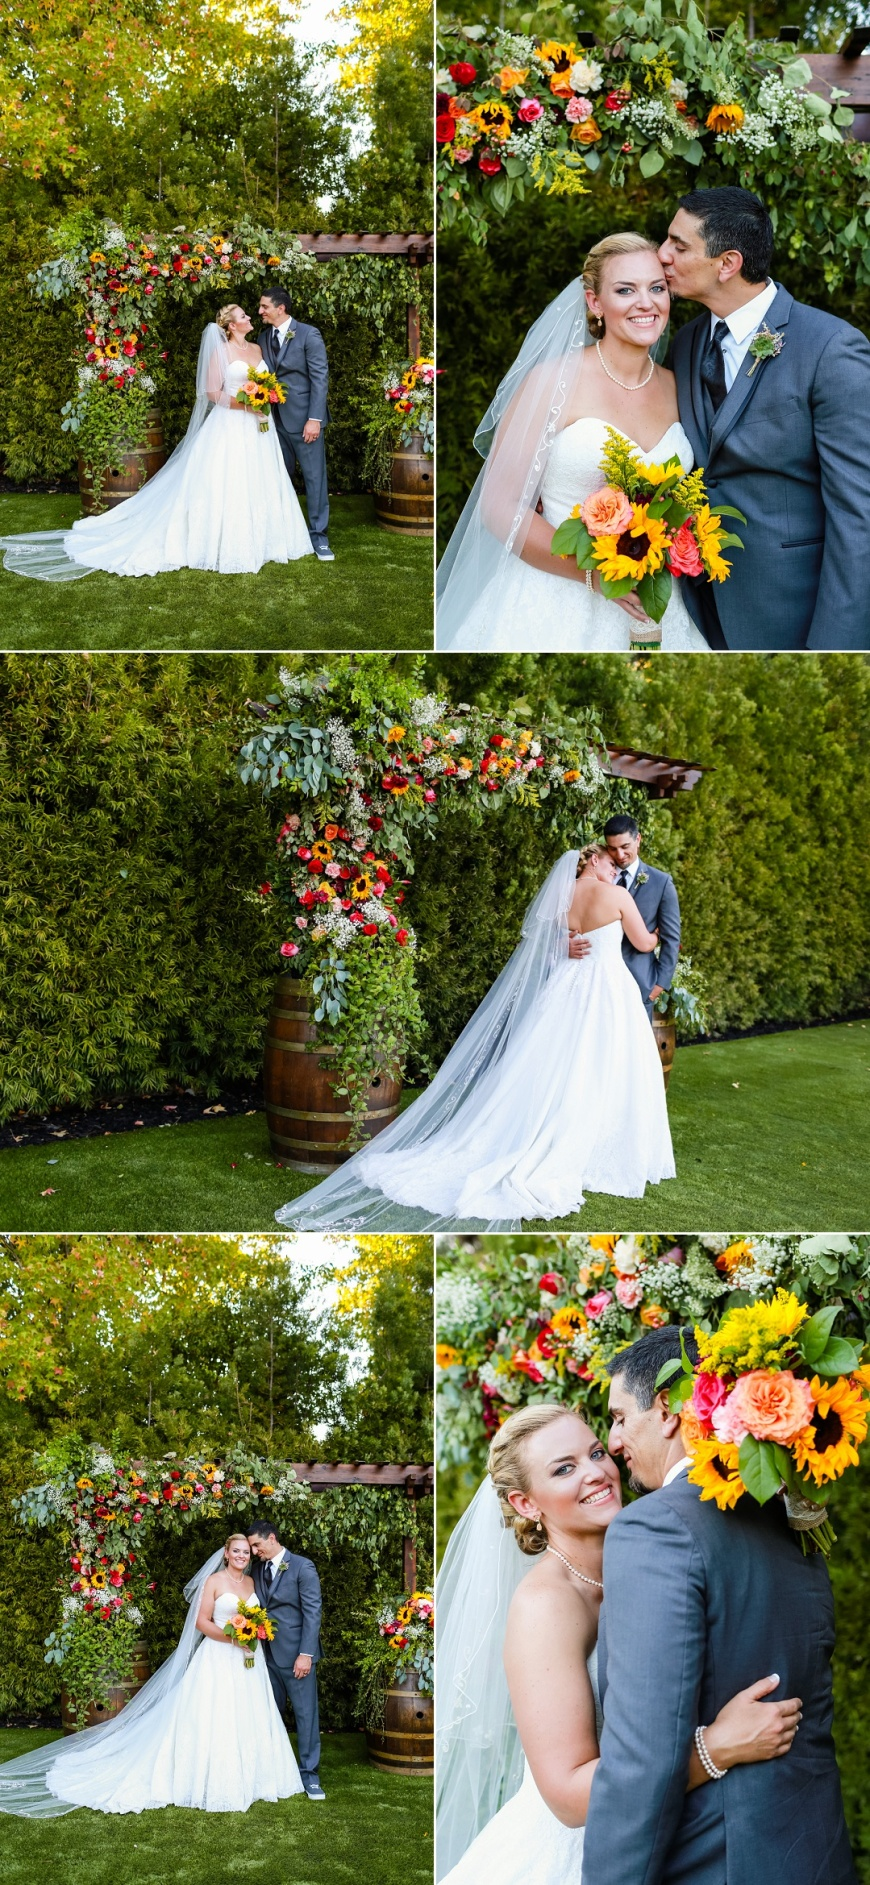 Monte-Sereno-Wedding-Photographer_1069.jpg